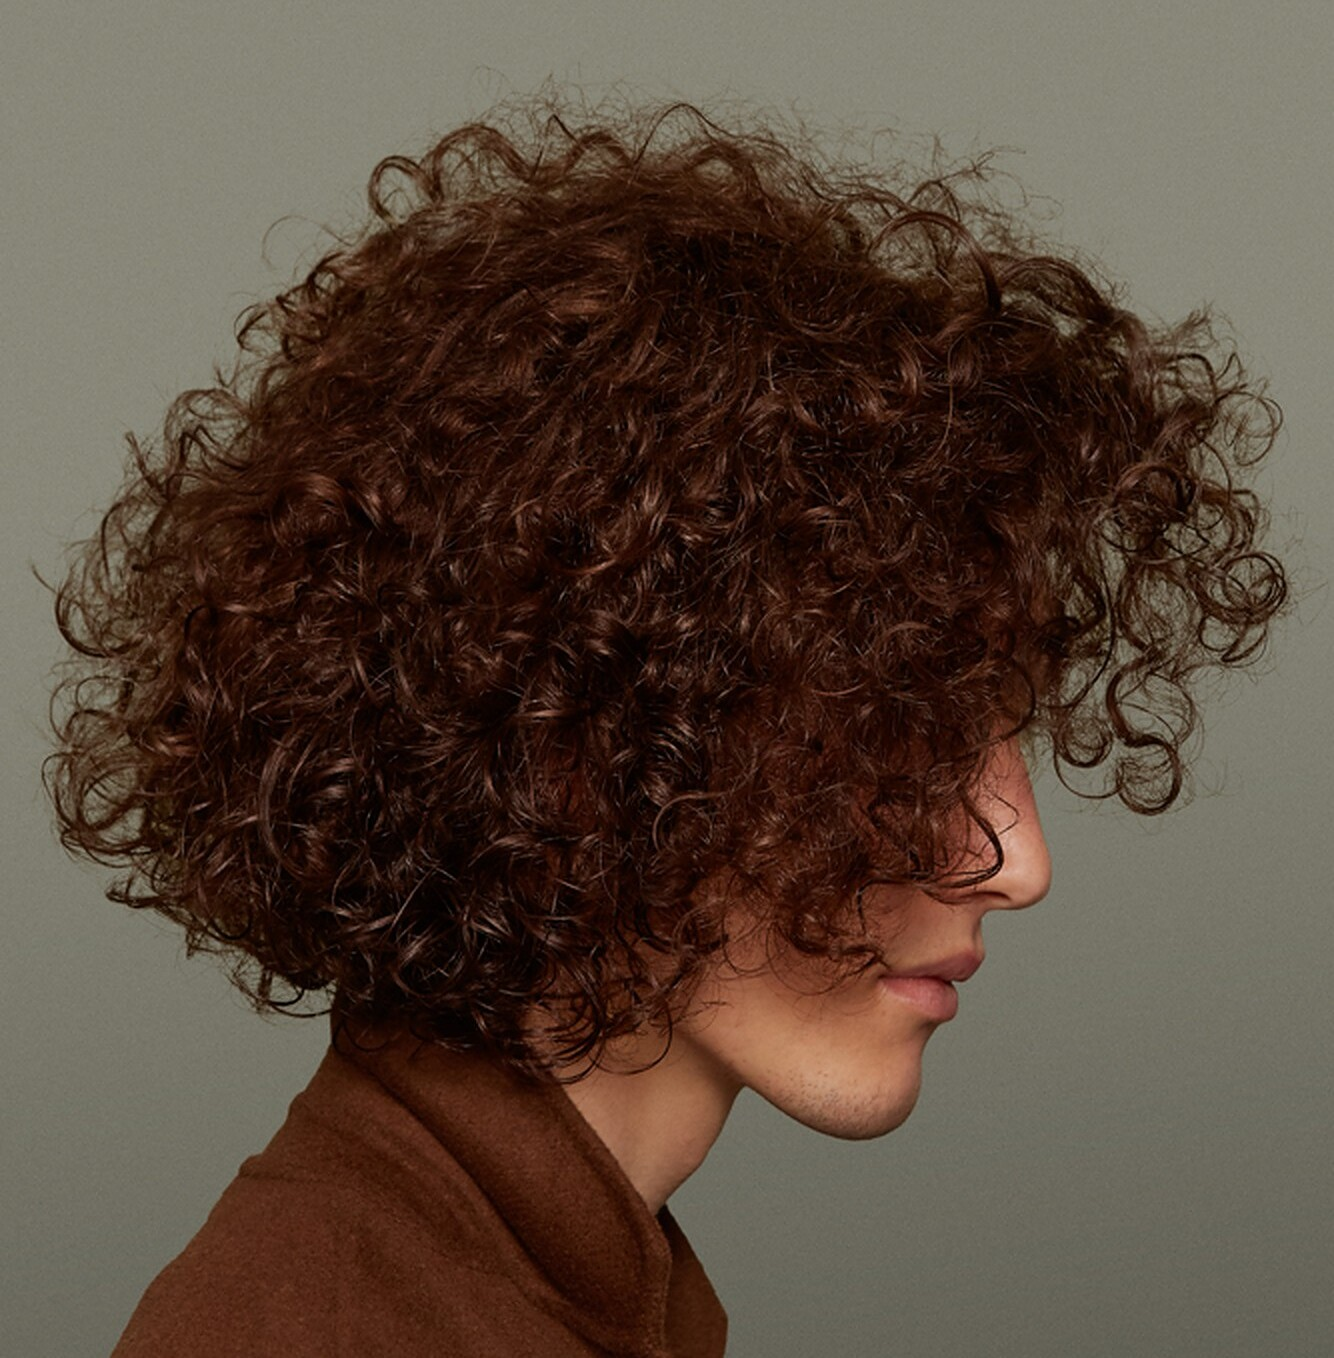 How To Care For And Style Men S Curly Hair At Length By Prose Hair